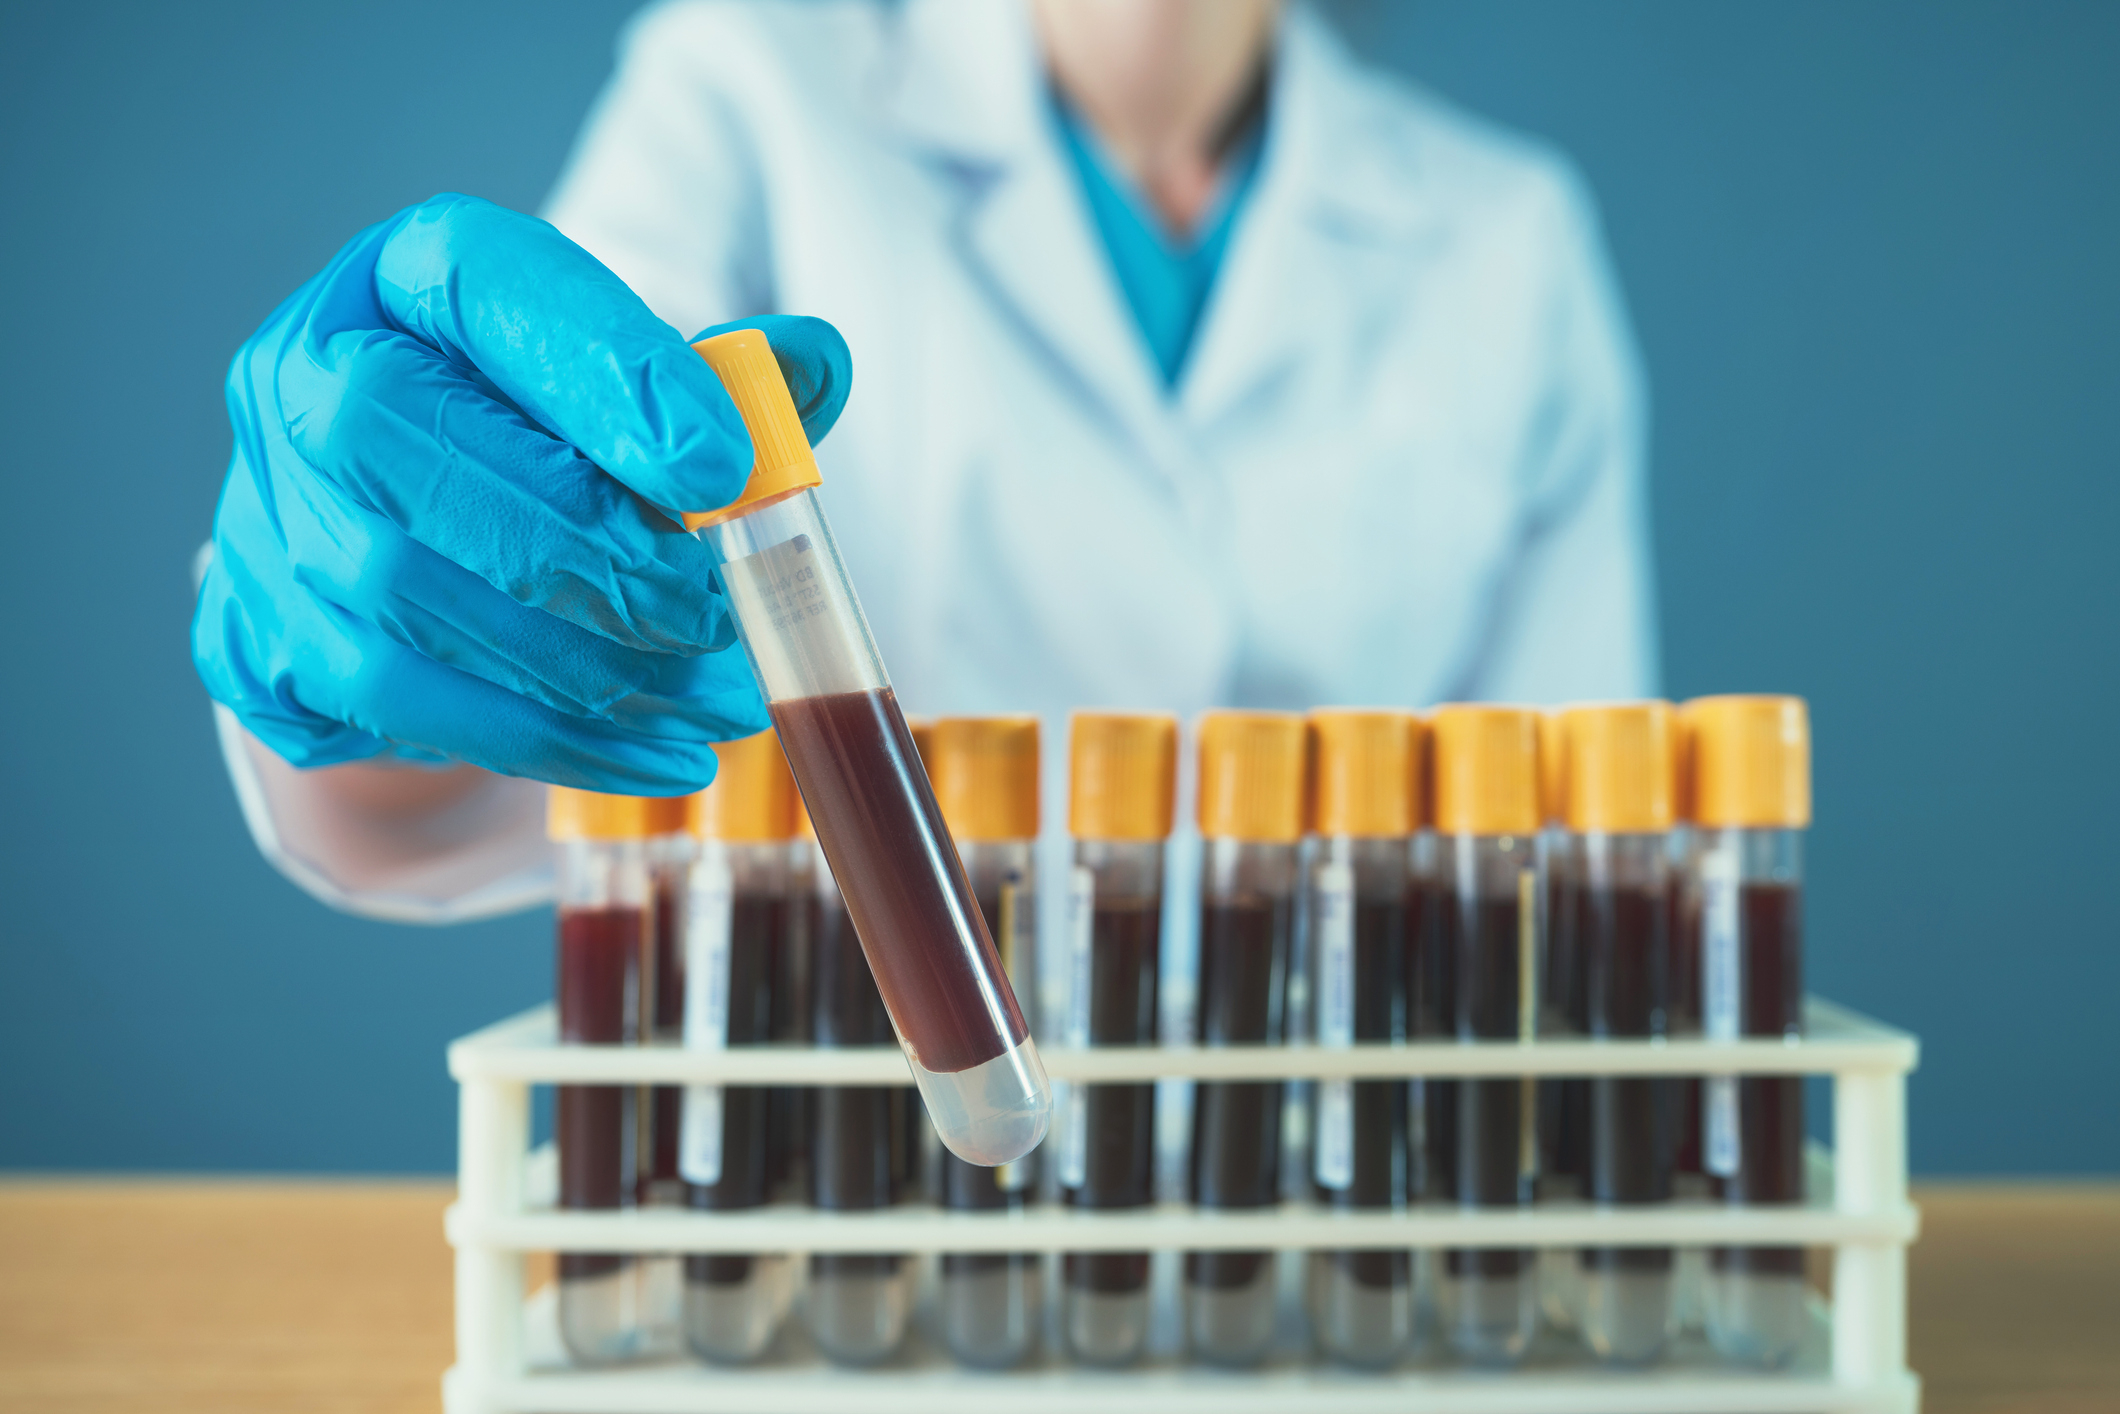 Test Measures Immune Response To Improve Ovarian Cancer Diagnosis Scimex